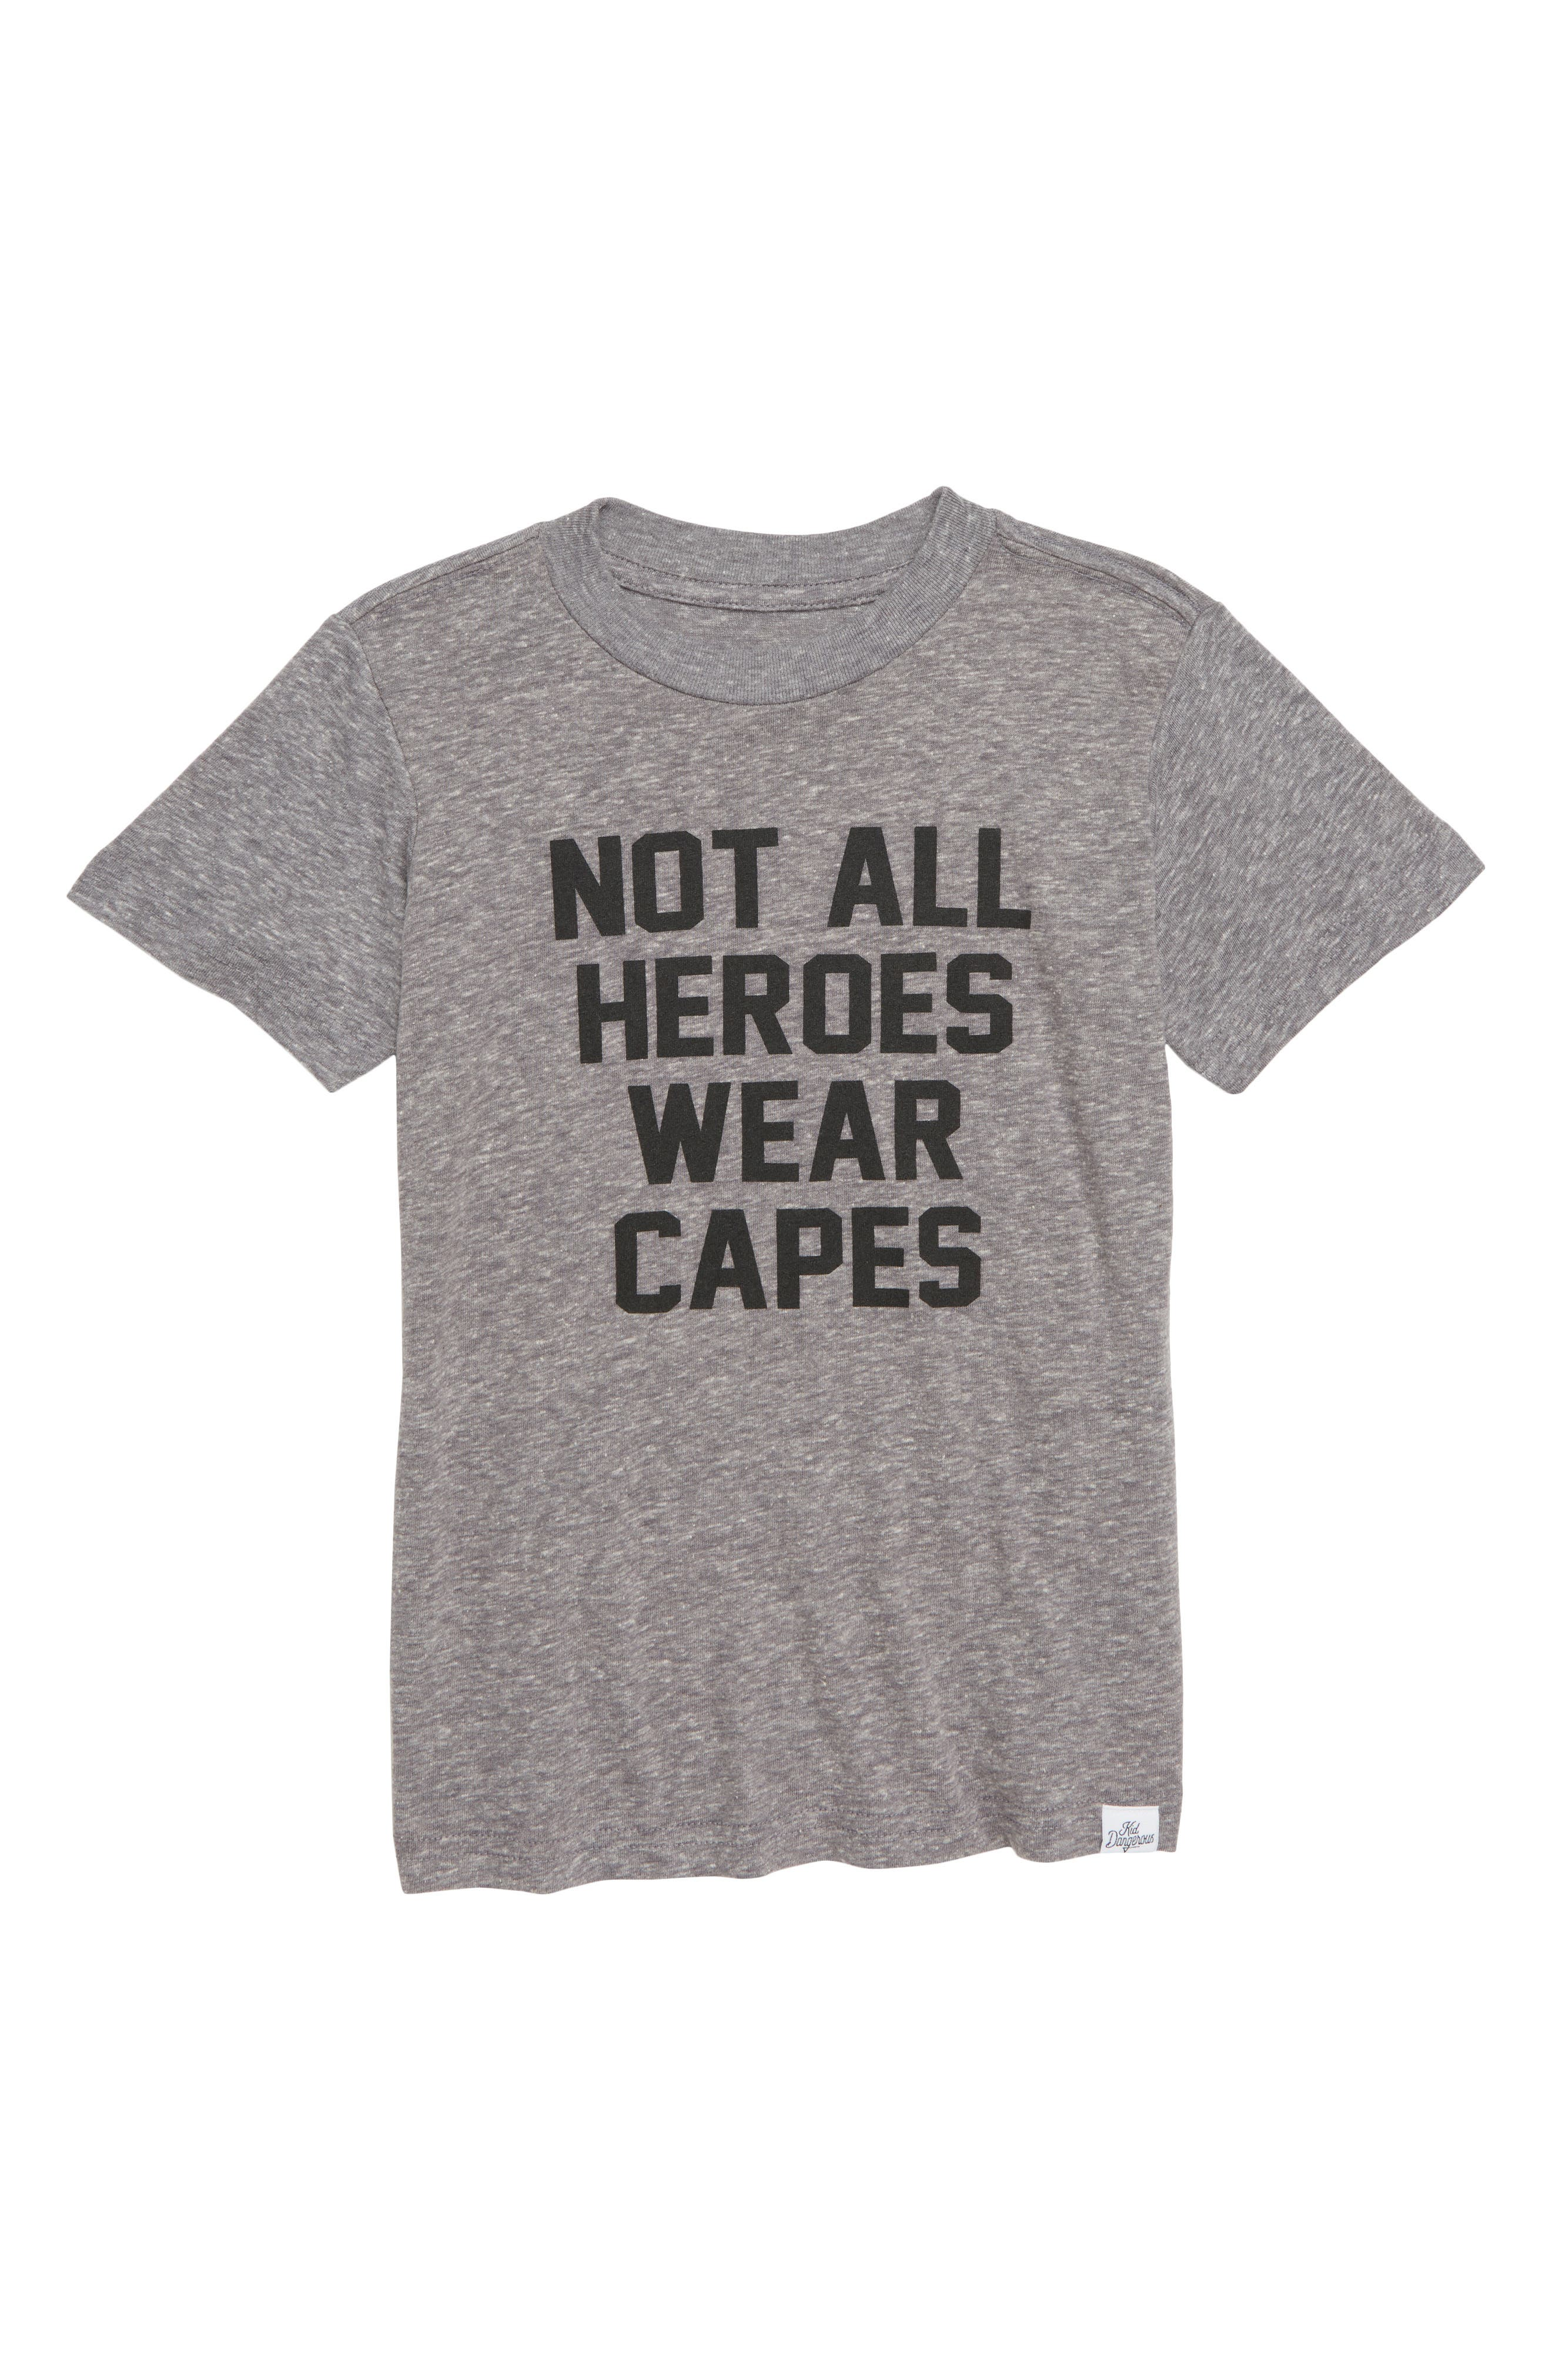 Not All Heroes Wear Capes Graphic T-Shirt,                         Main,                         color, 030